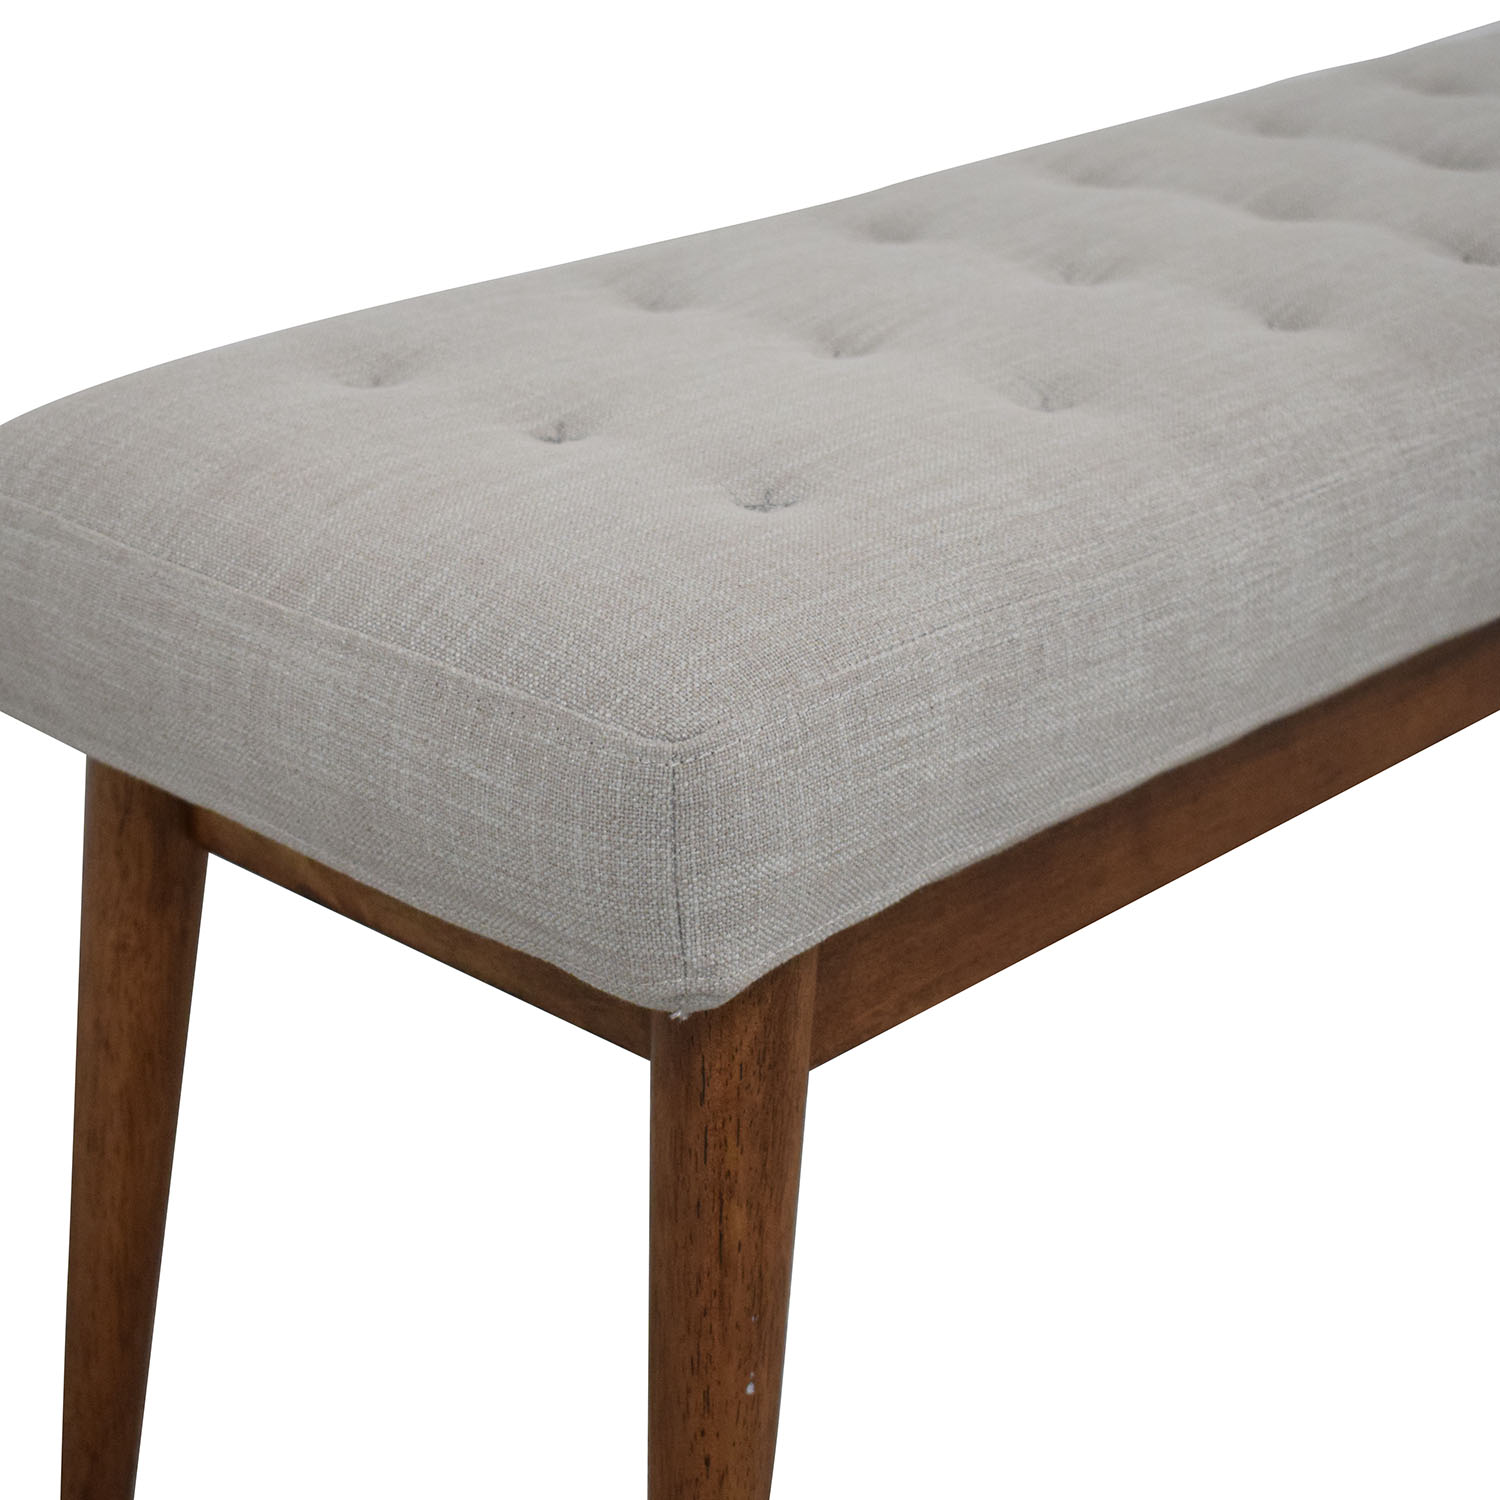 West Elm Upholstered Bench / Benches